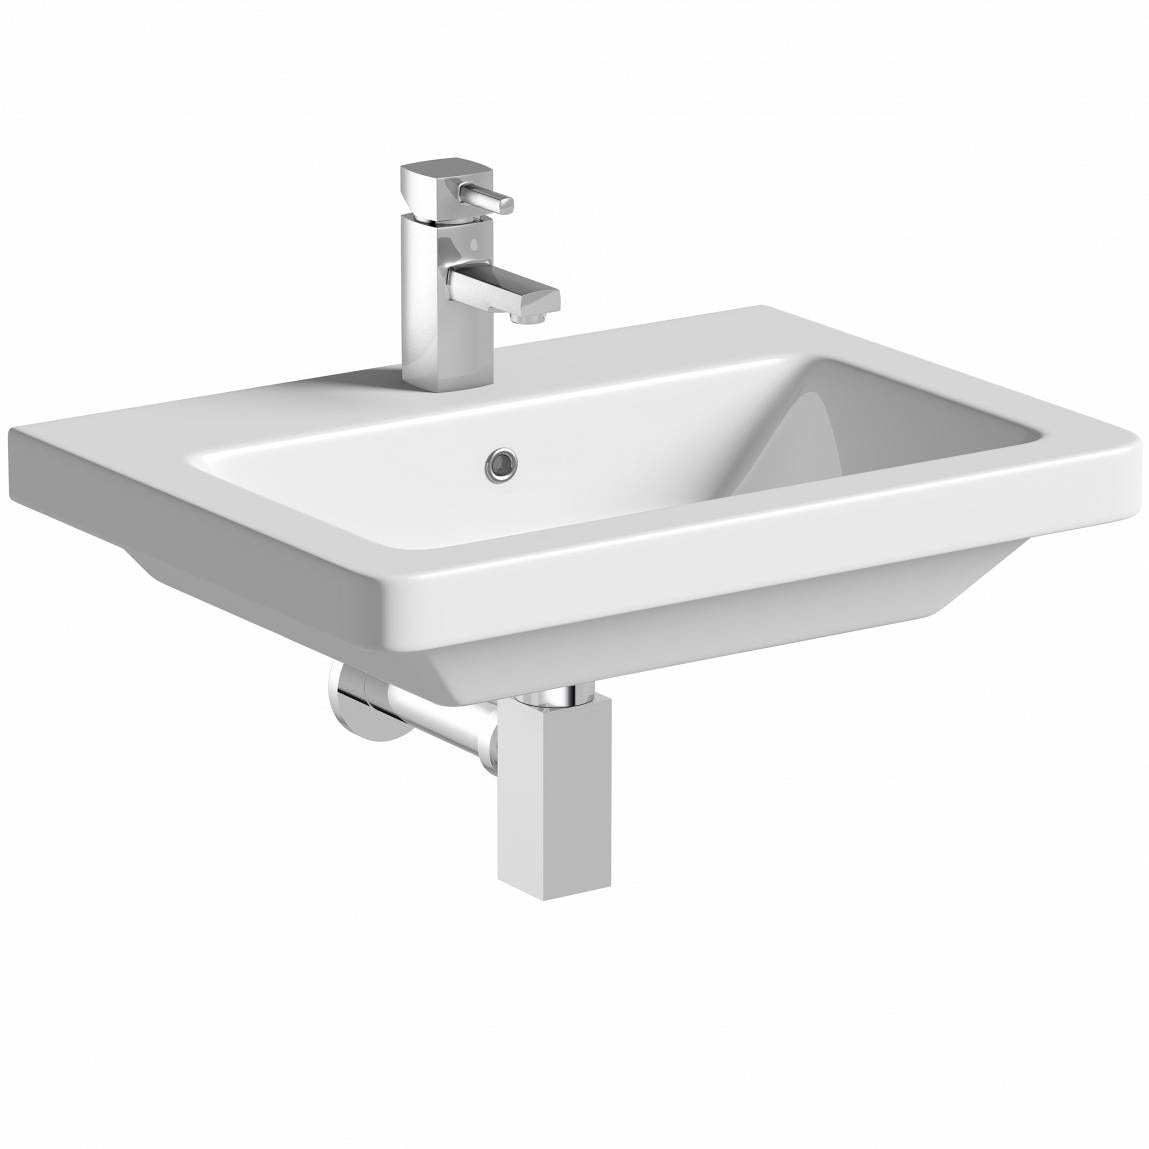 Mode Cooper 1 tap hole wall hung basin 600mm